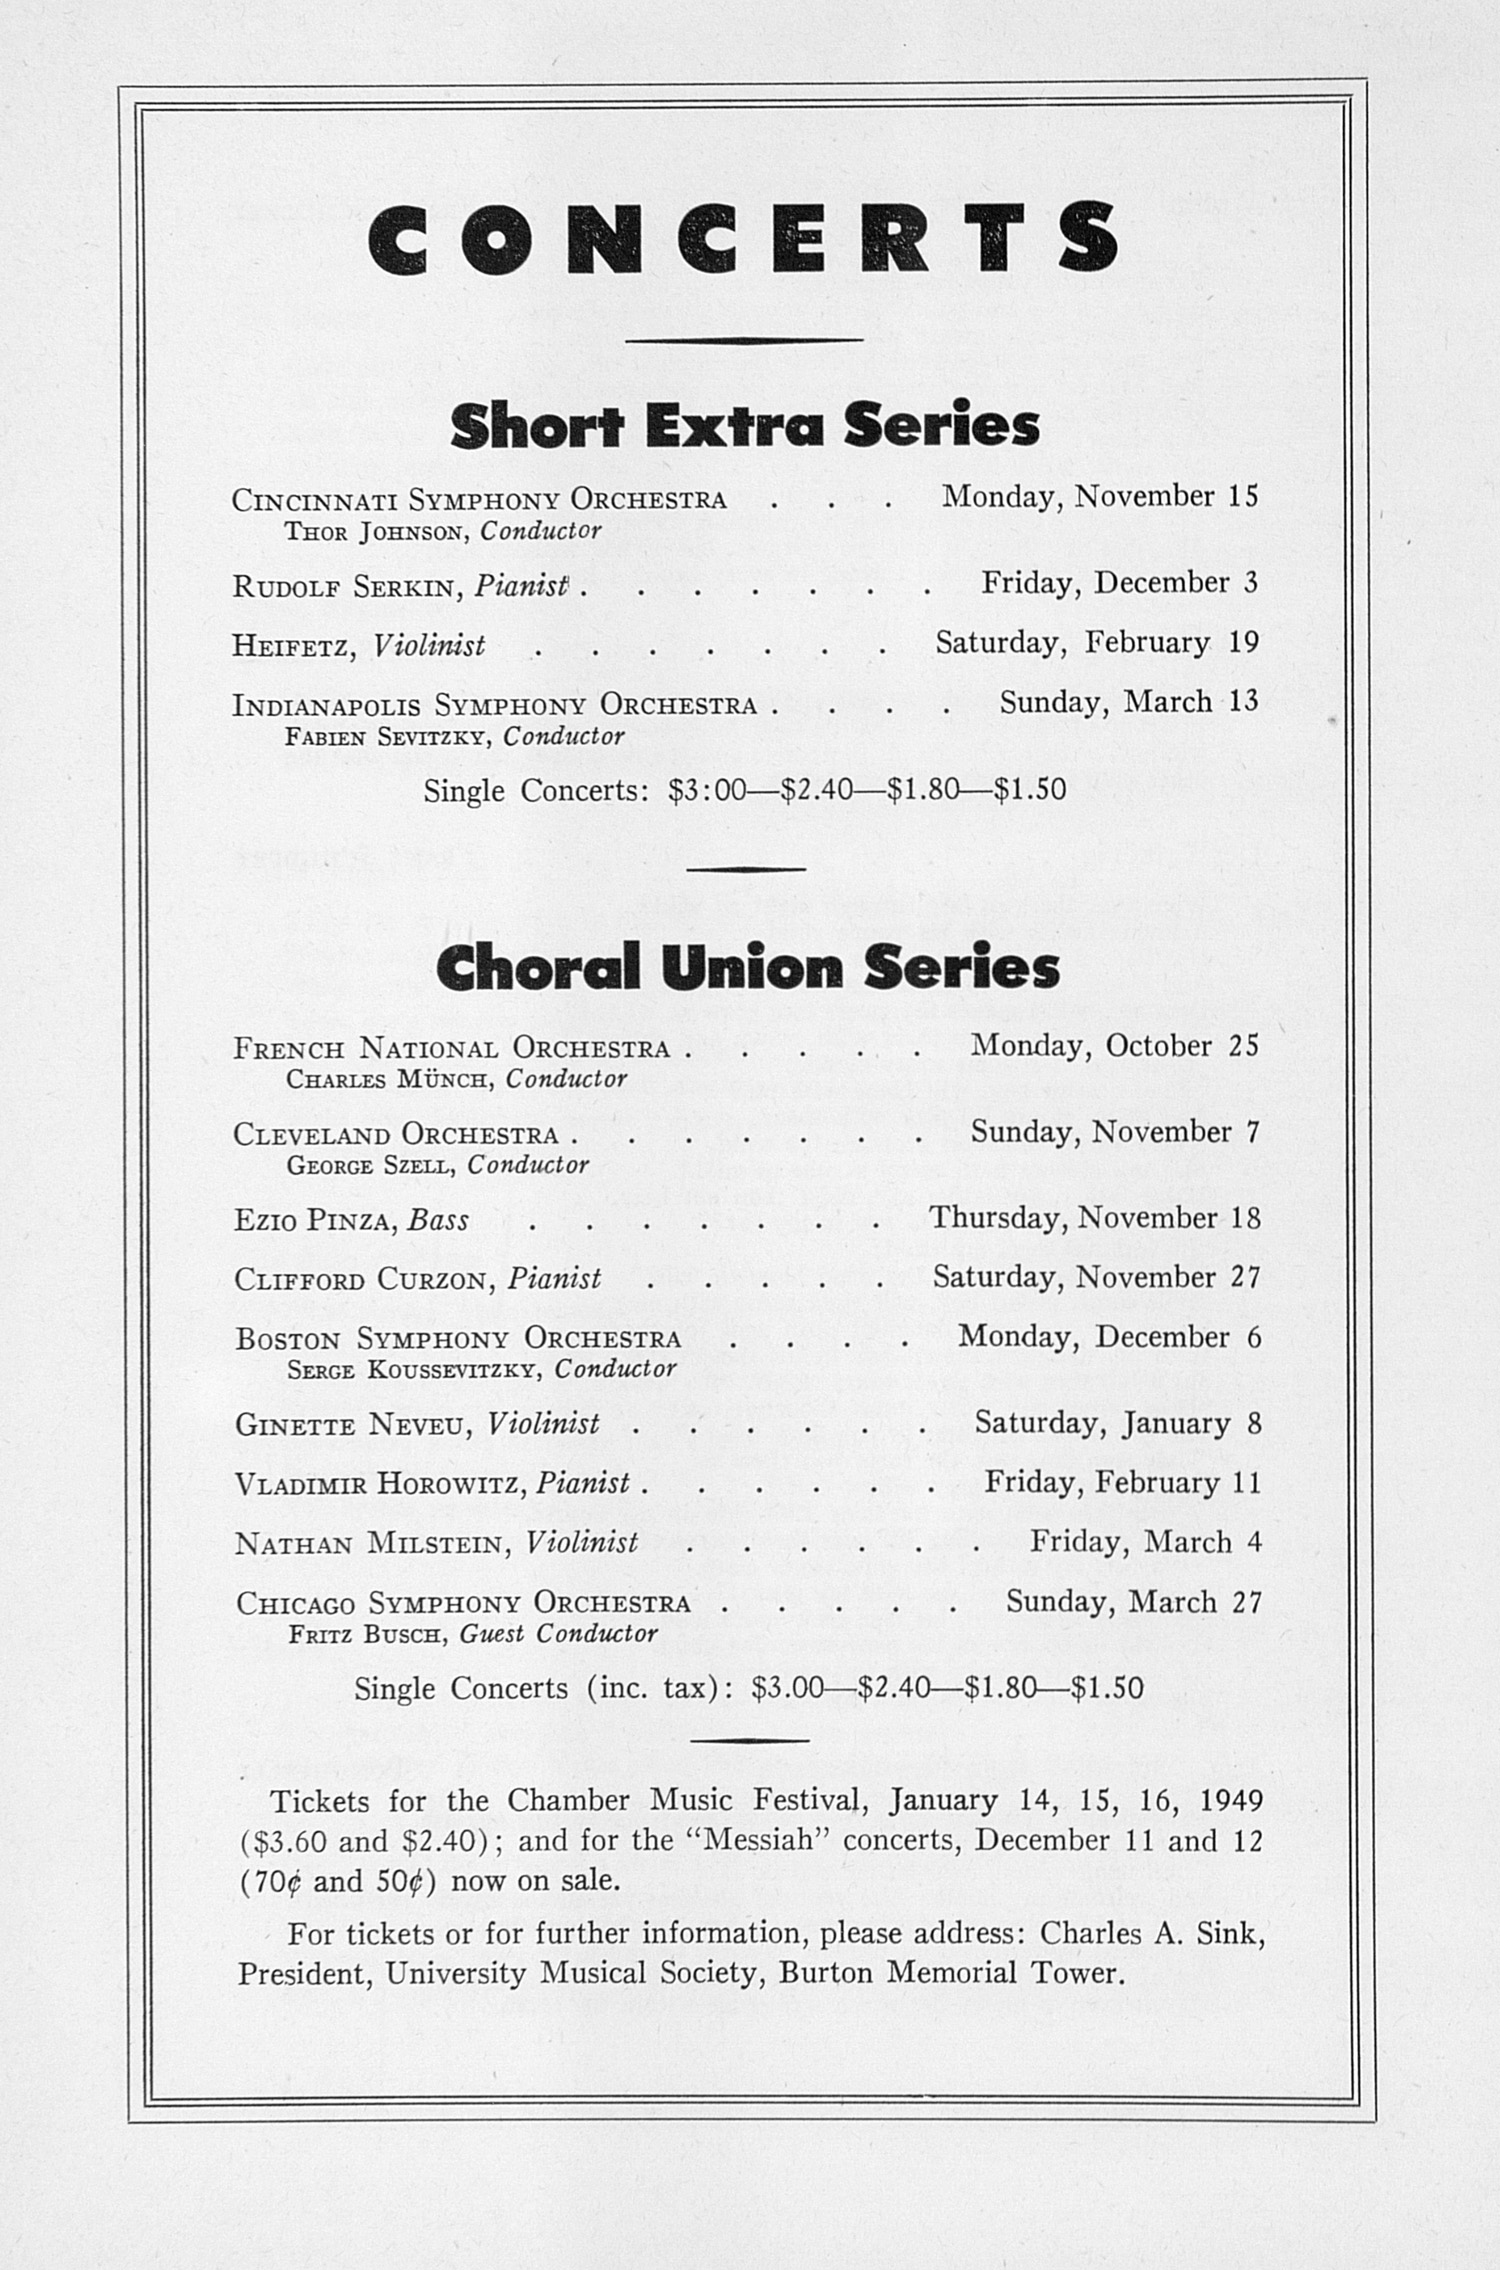 UMS Concert Program, October 14, 1948: Third Annual Extra Concert Series -- Marian Anderson image